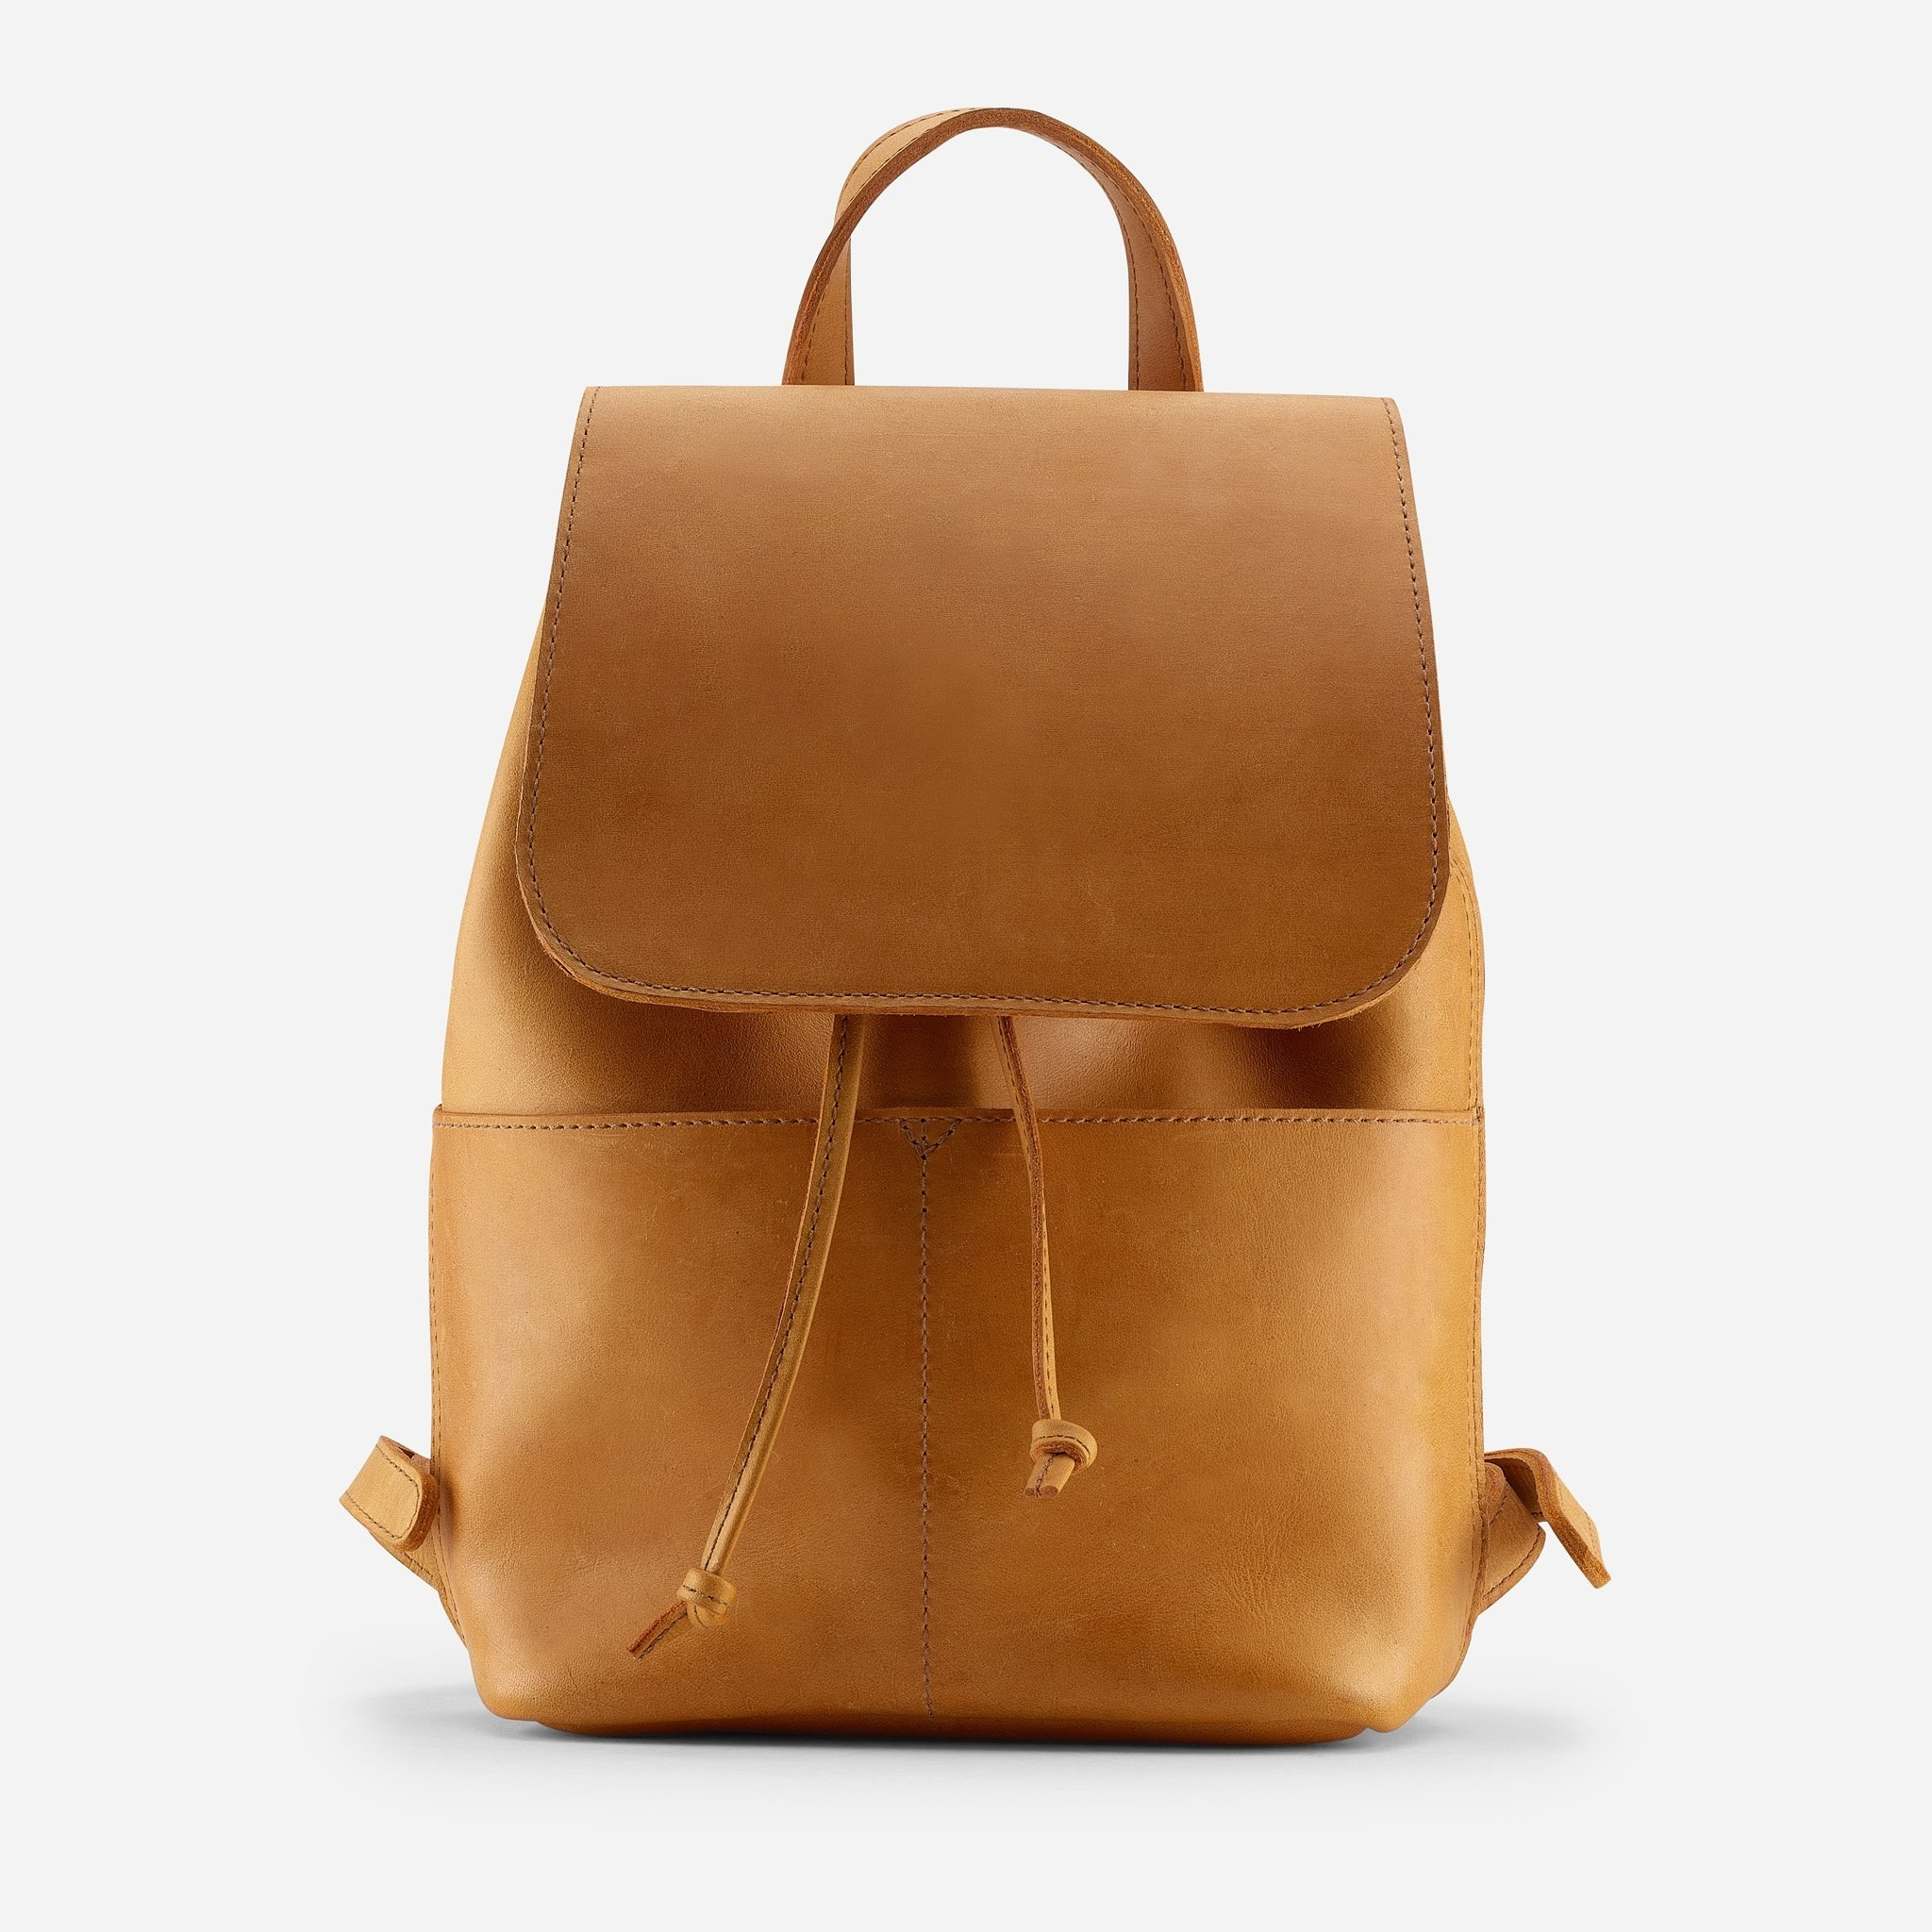 The neutral backpack with a flap over the front